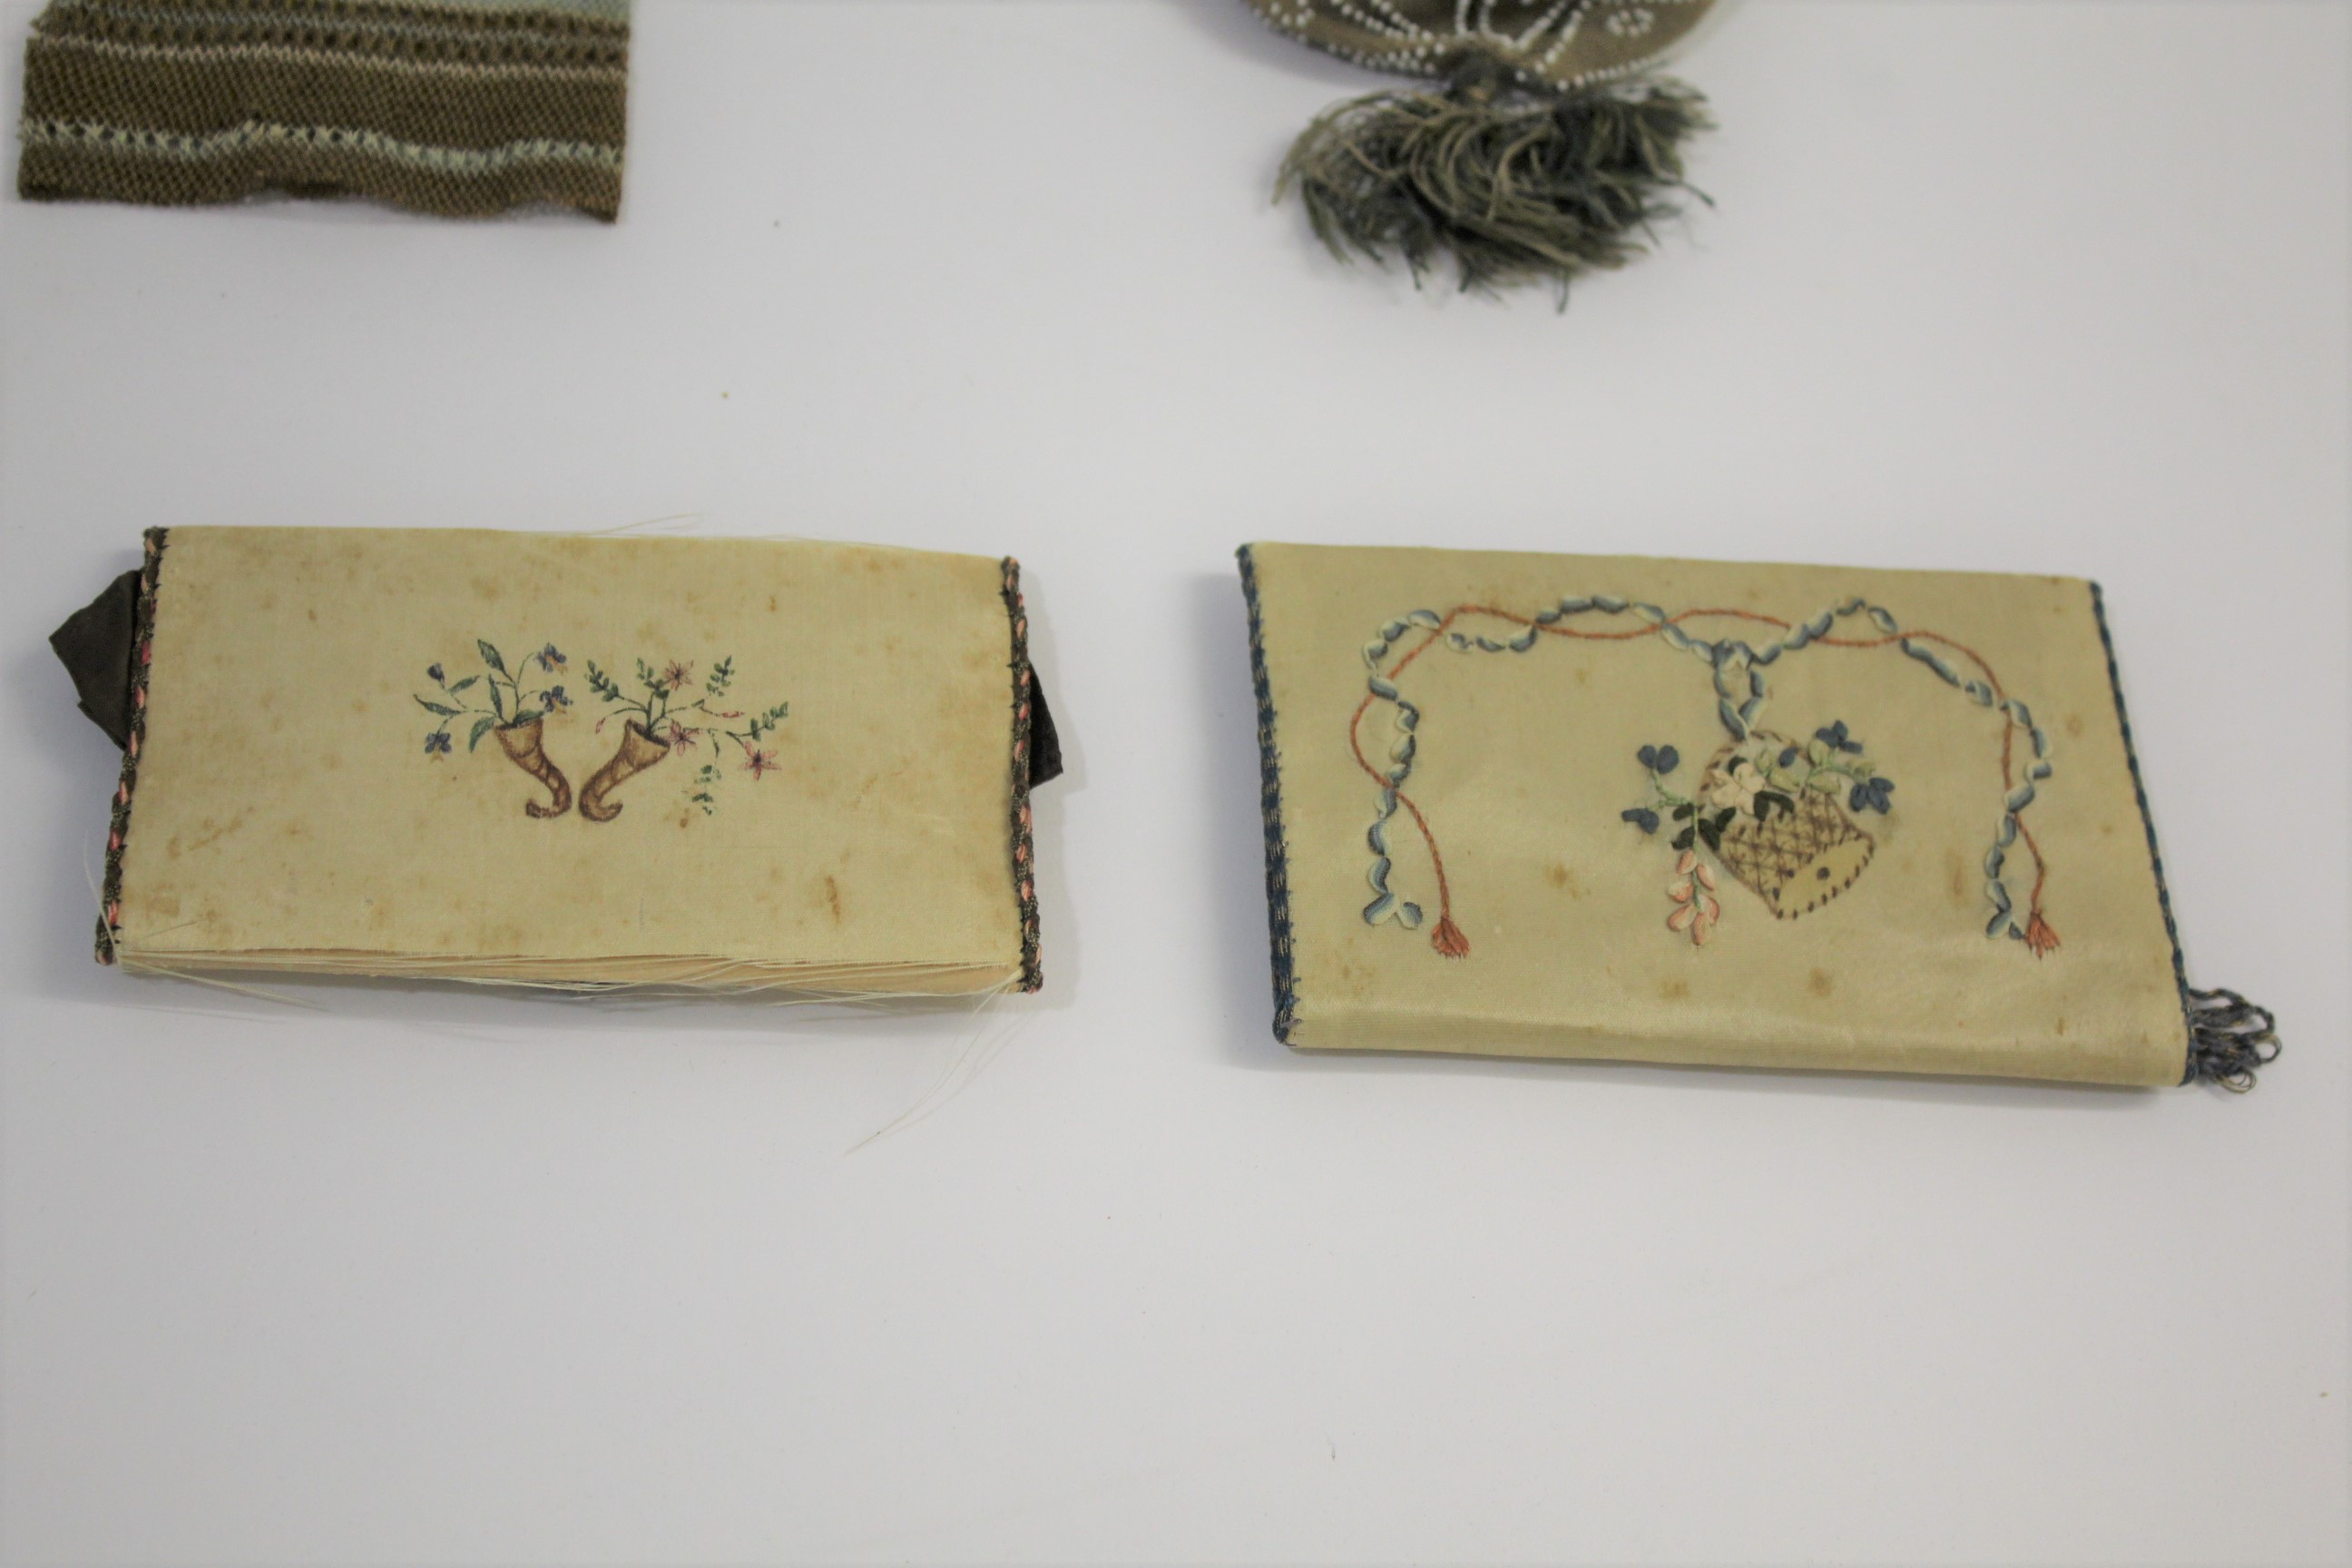 Lot 1859 - 18THC CARD CASES & PURSES an interesting group including 2 similar 18thc embroidered card cases, a